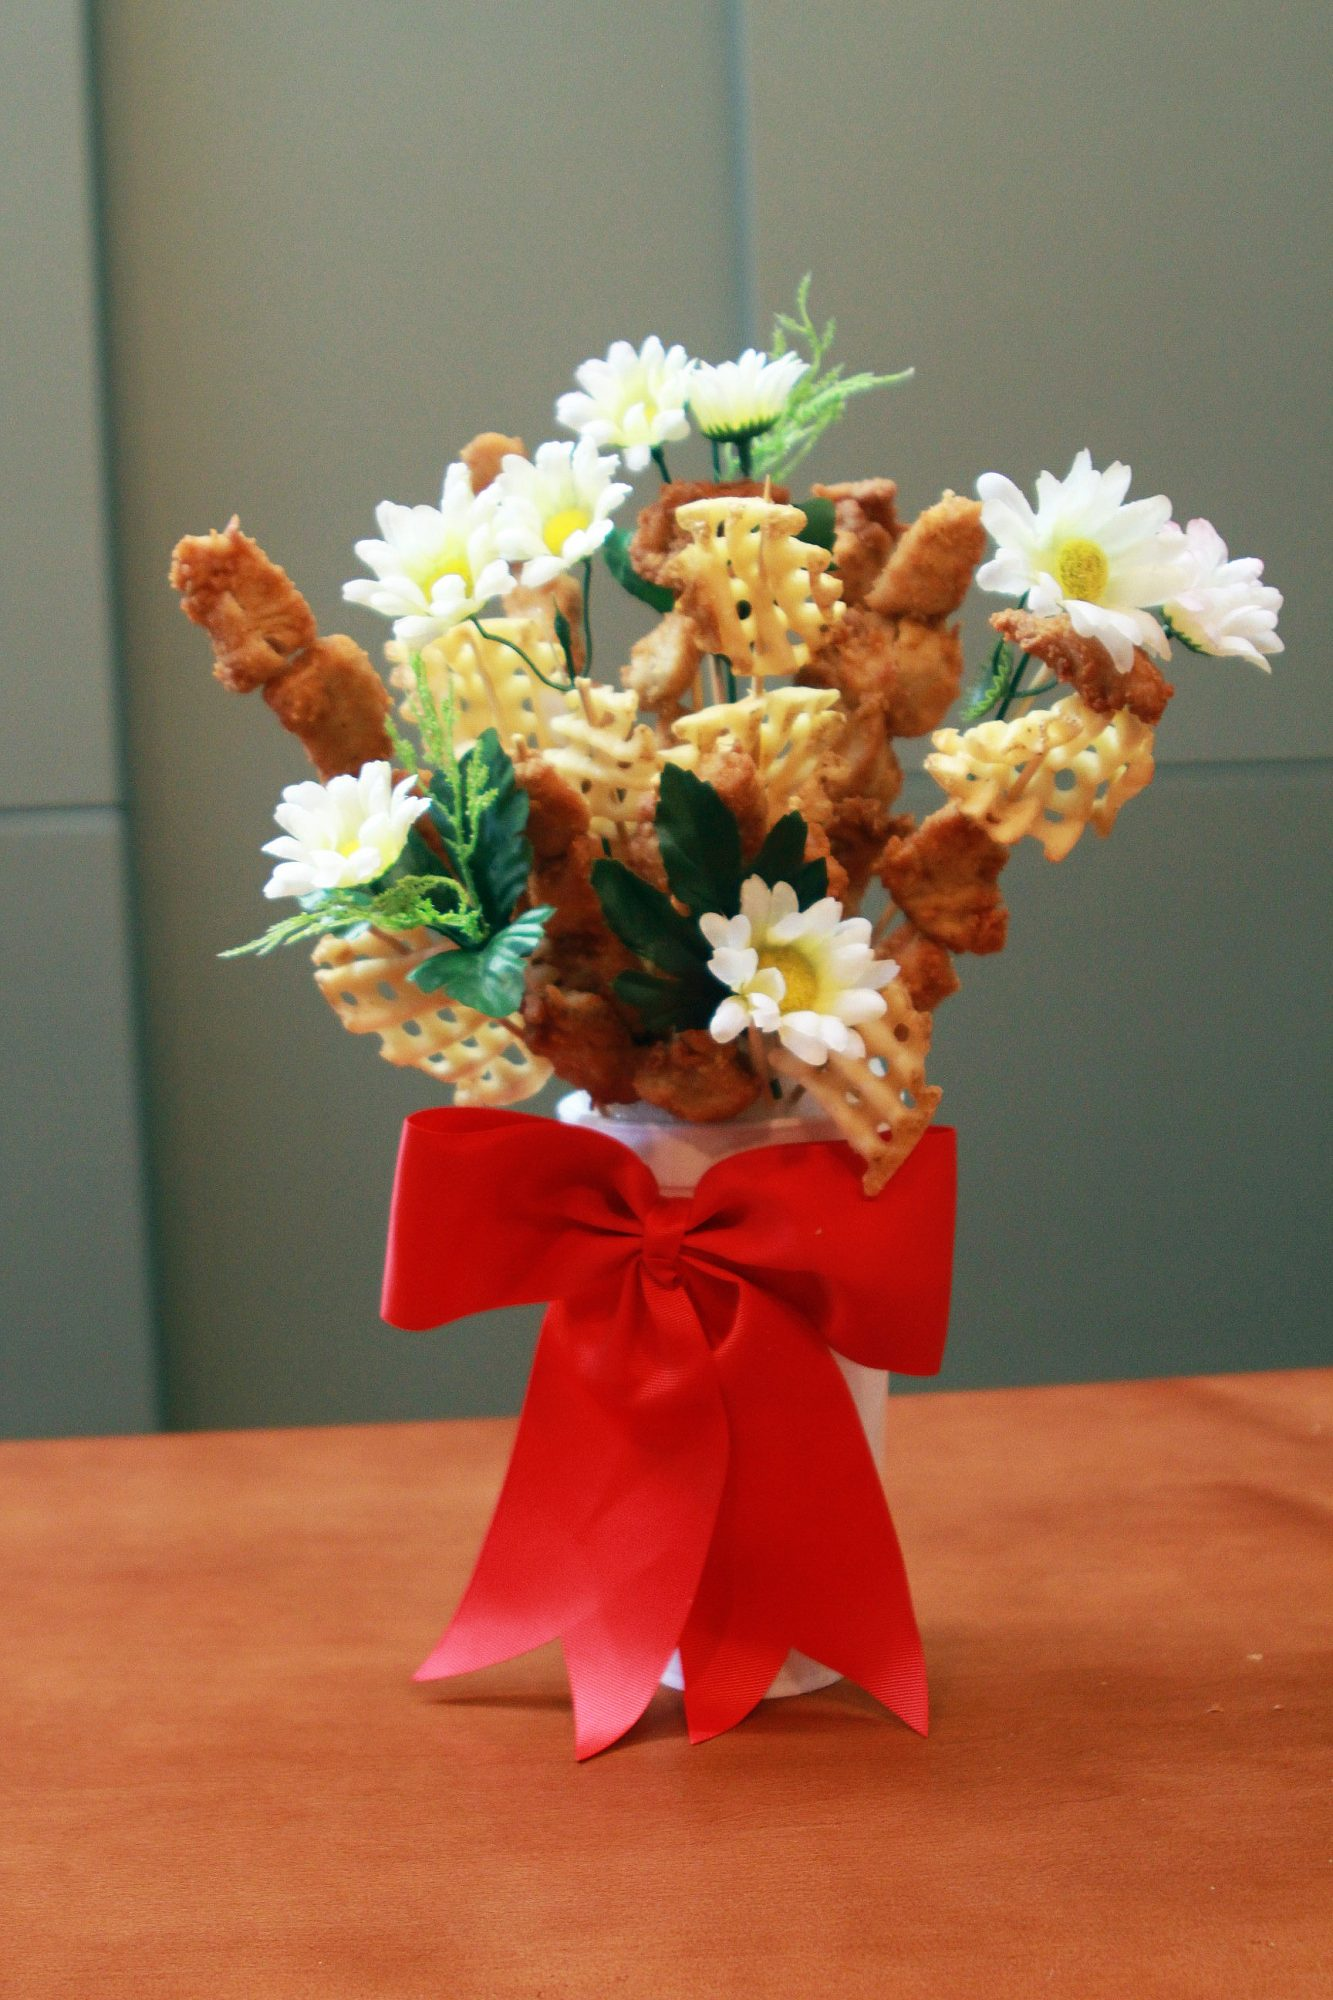 This Chicken Nugget Bouquet Is the Only Way to Say 'I Love You' This Valentine's Day